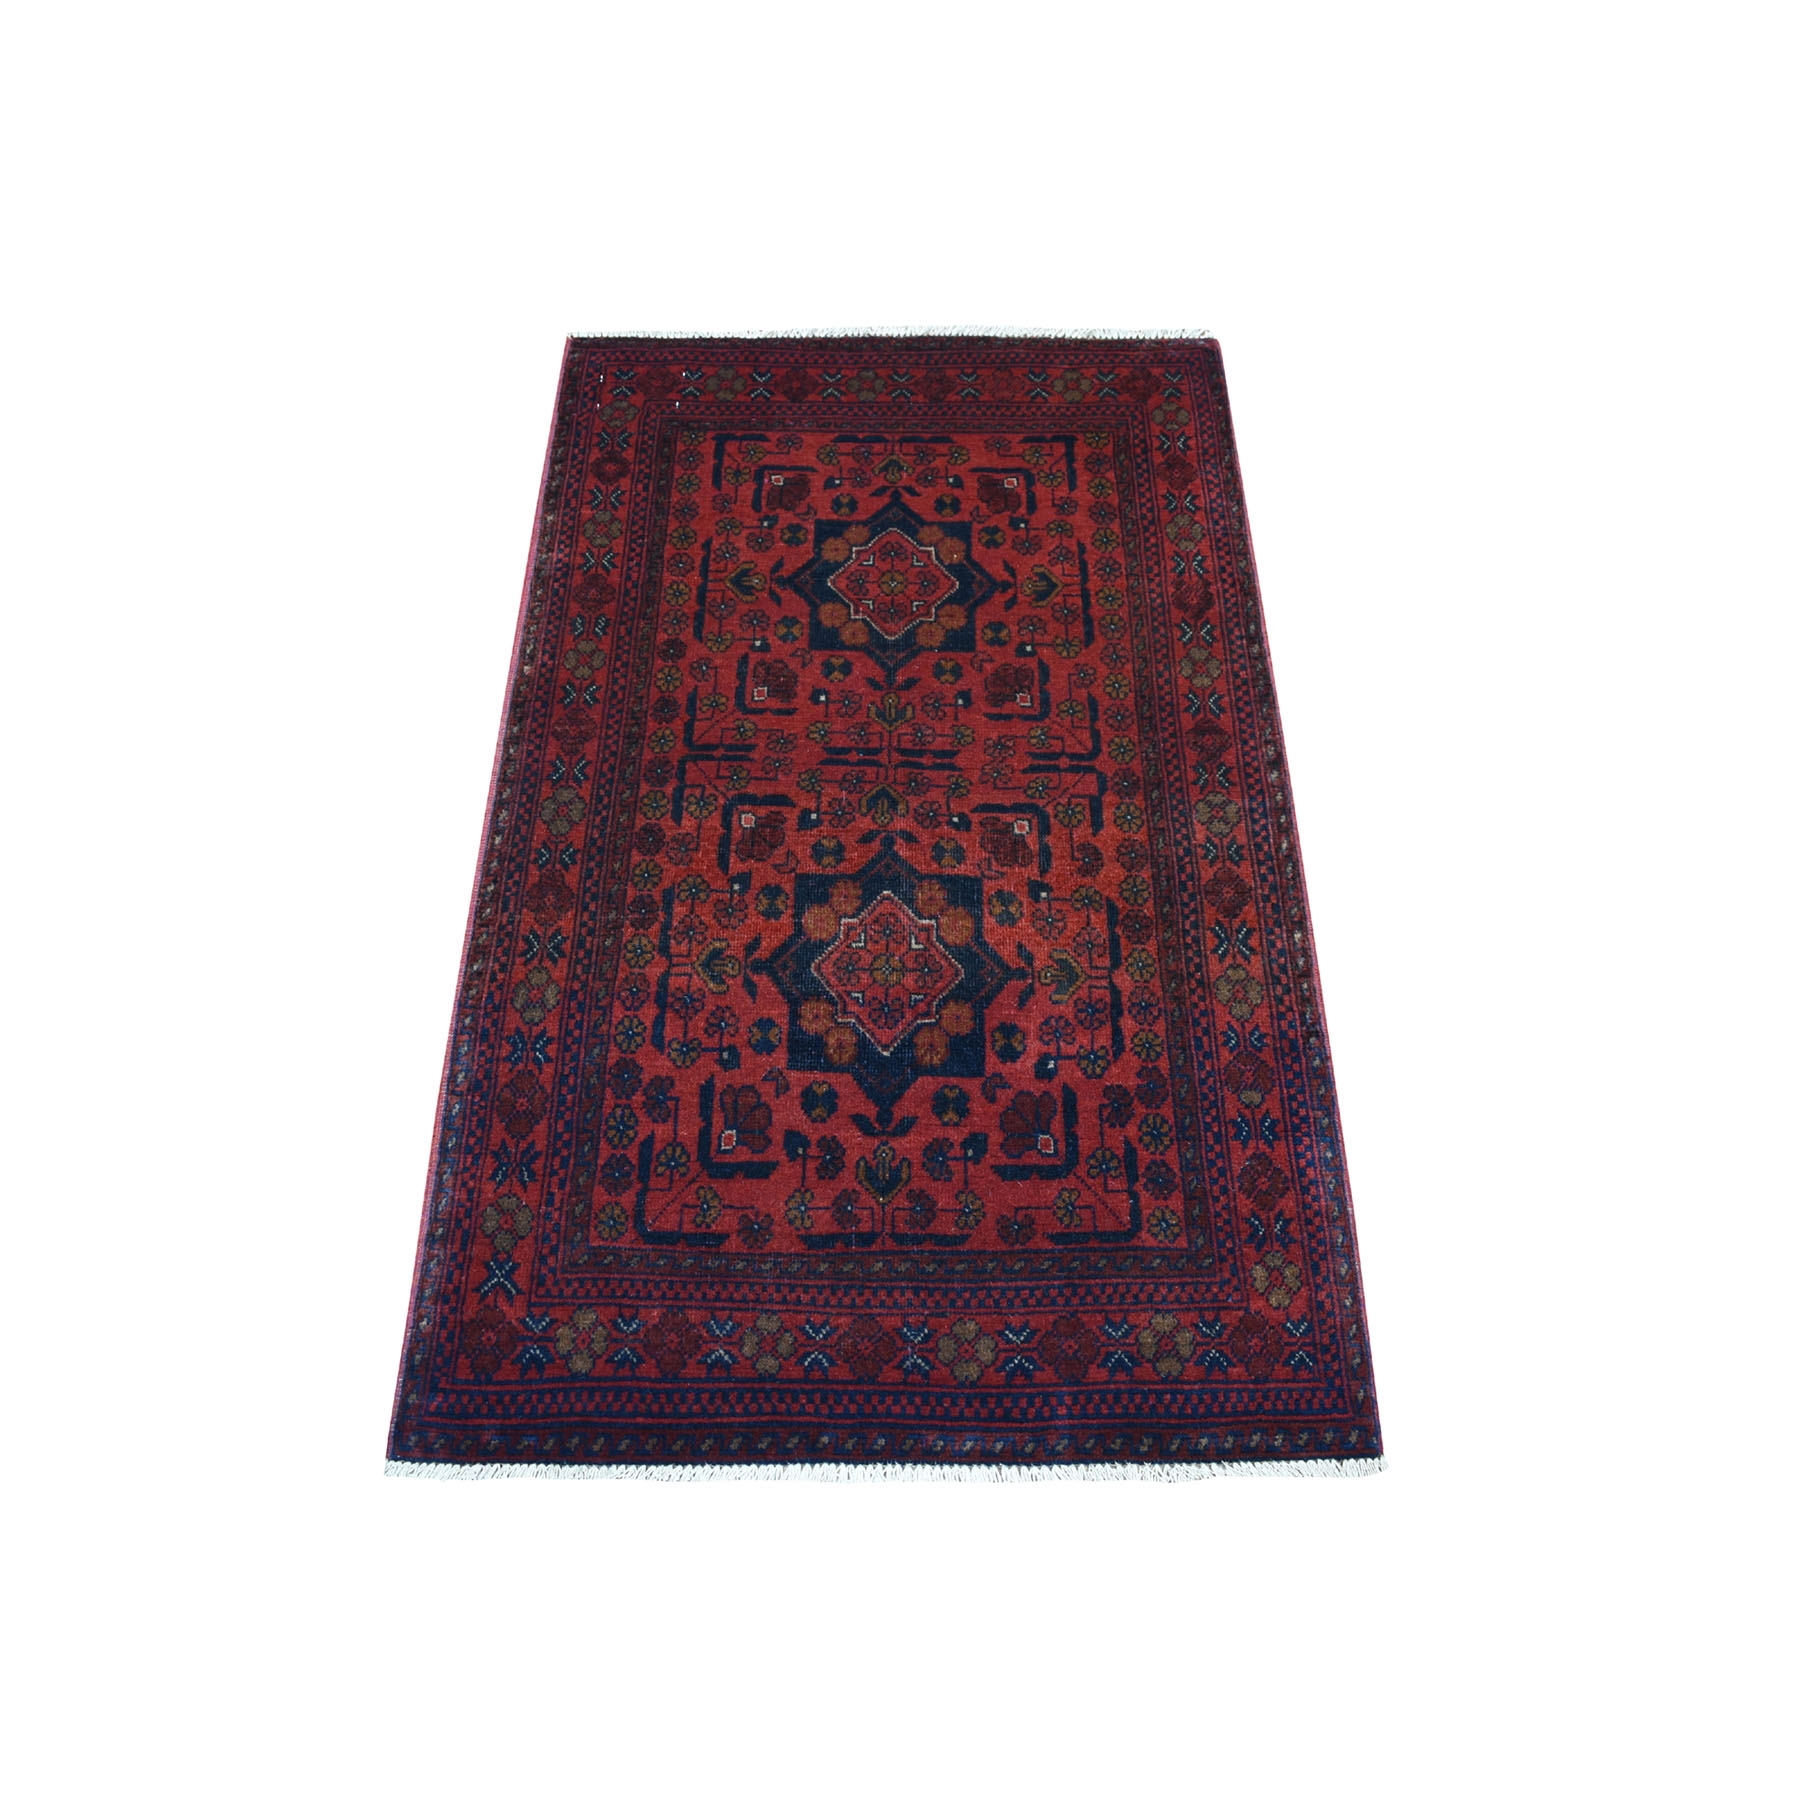 "2'6""X4'1"" Deep And Saturated Red Geometric Afghan Andkhoy Pure Wool Hand Knotted Oriental Rug moaece0b"